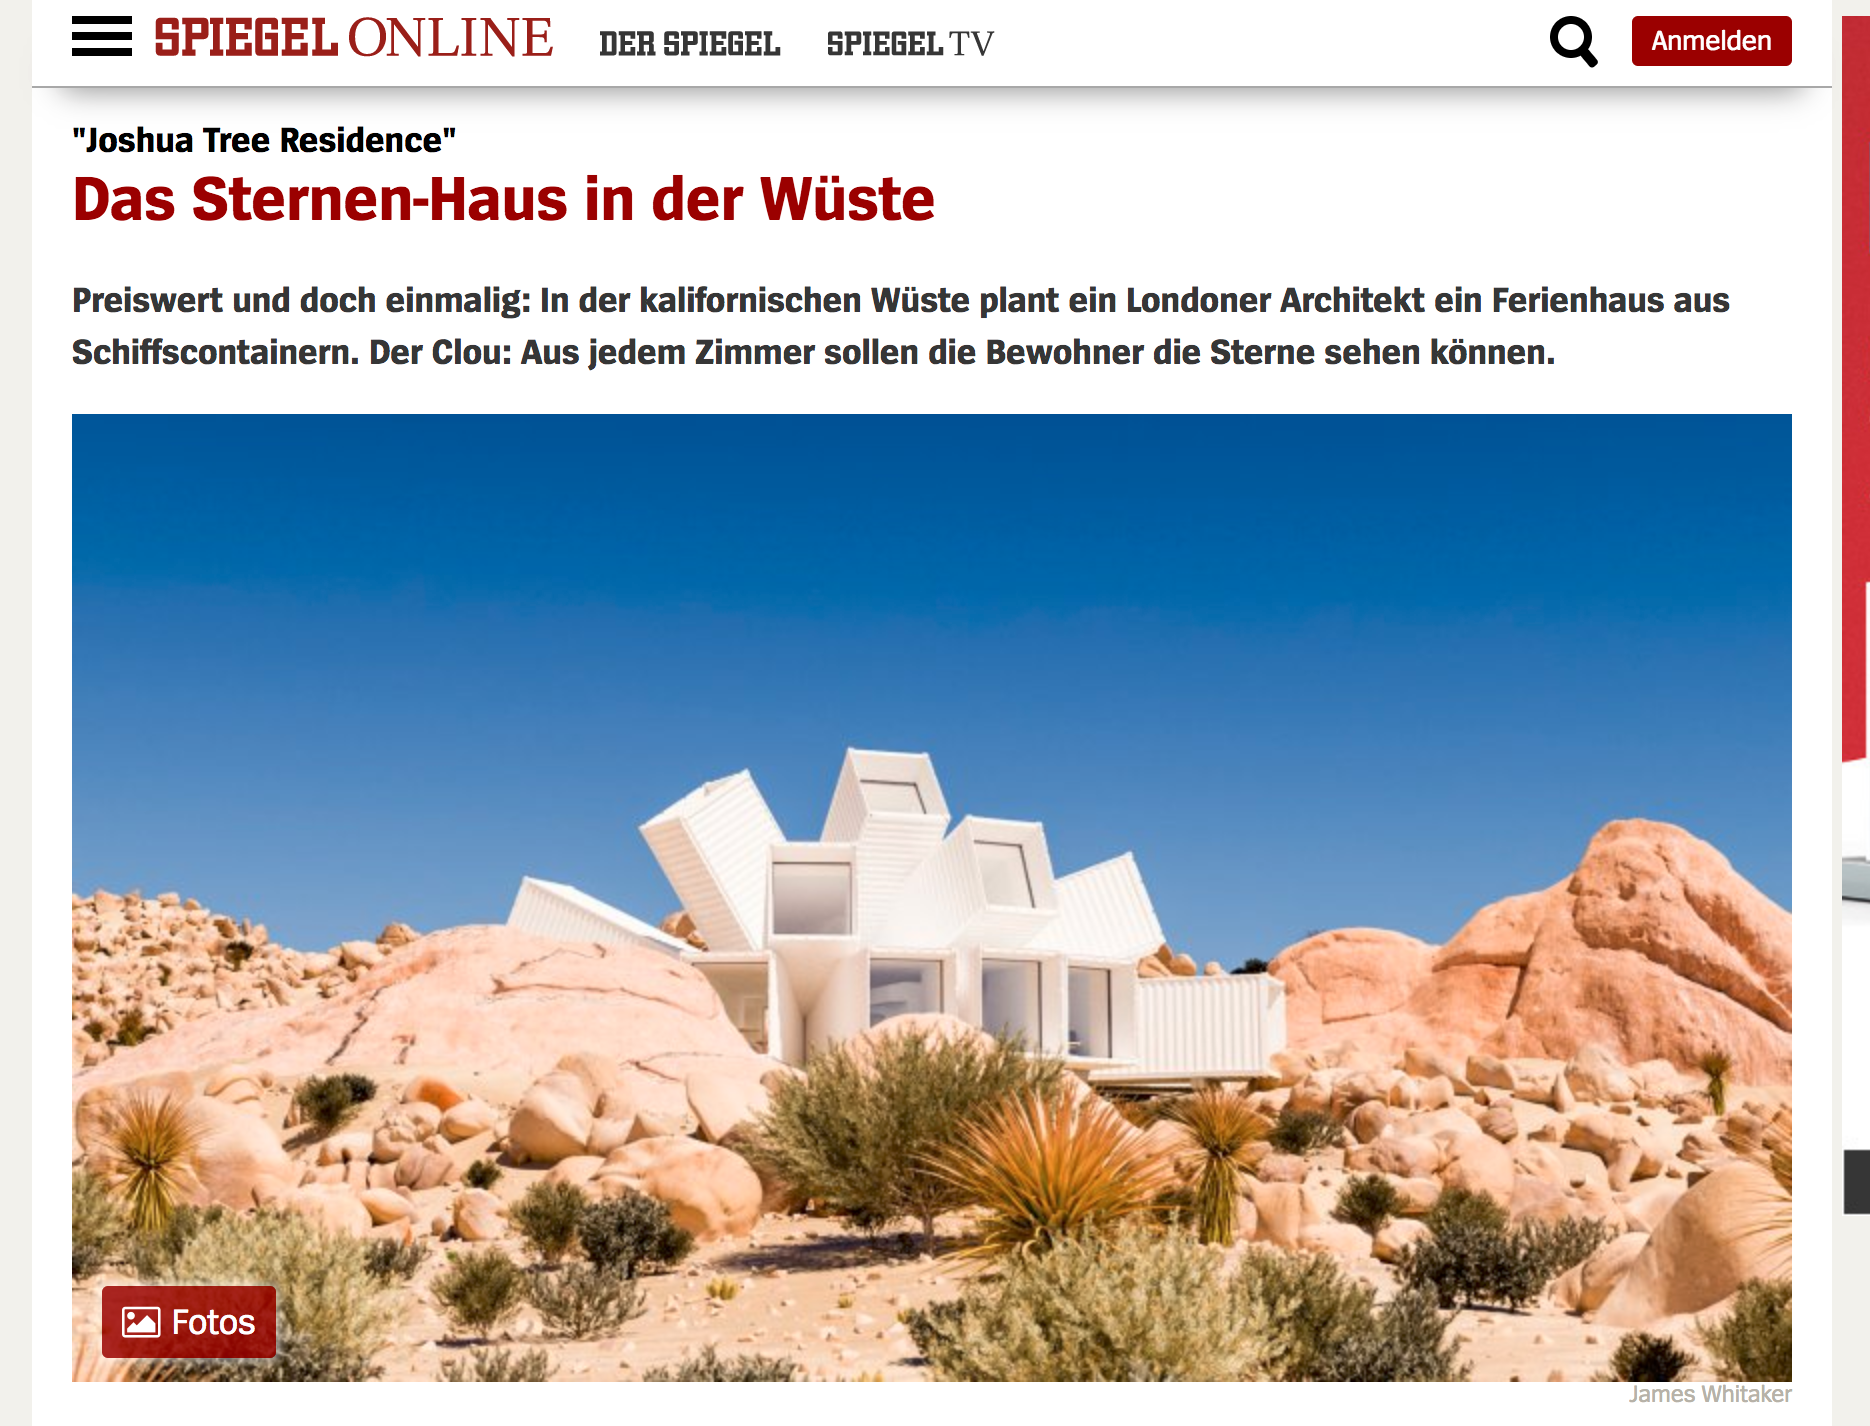 Whitaker Studio on Der Spiegel